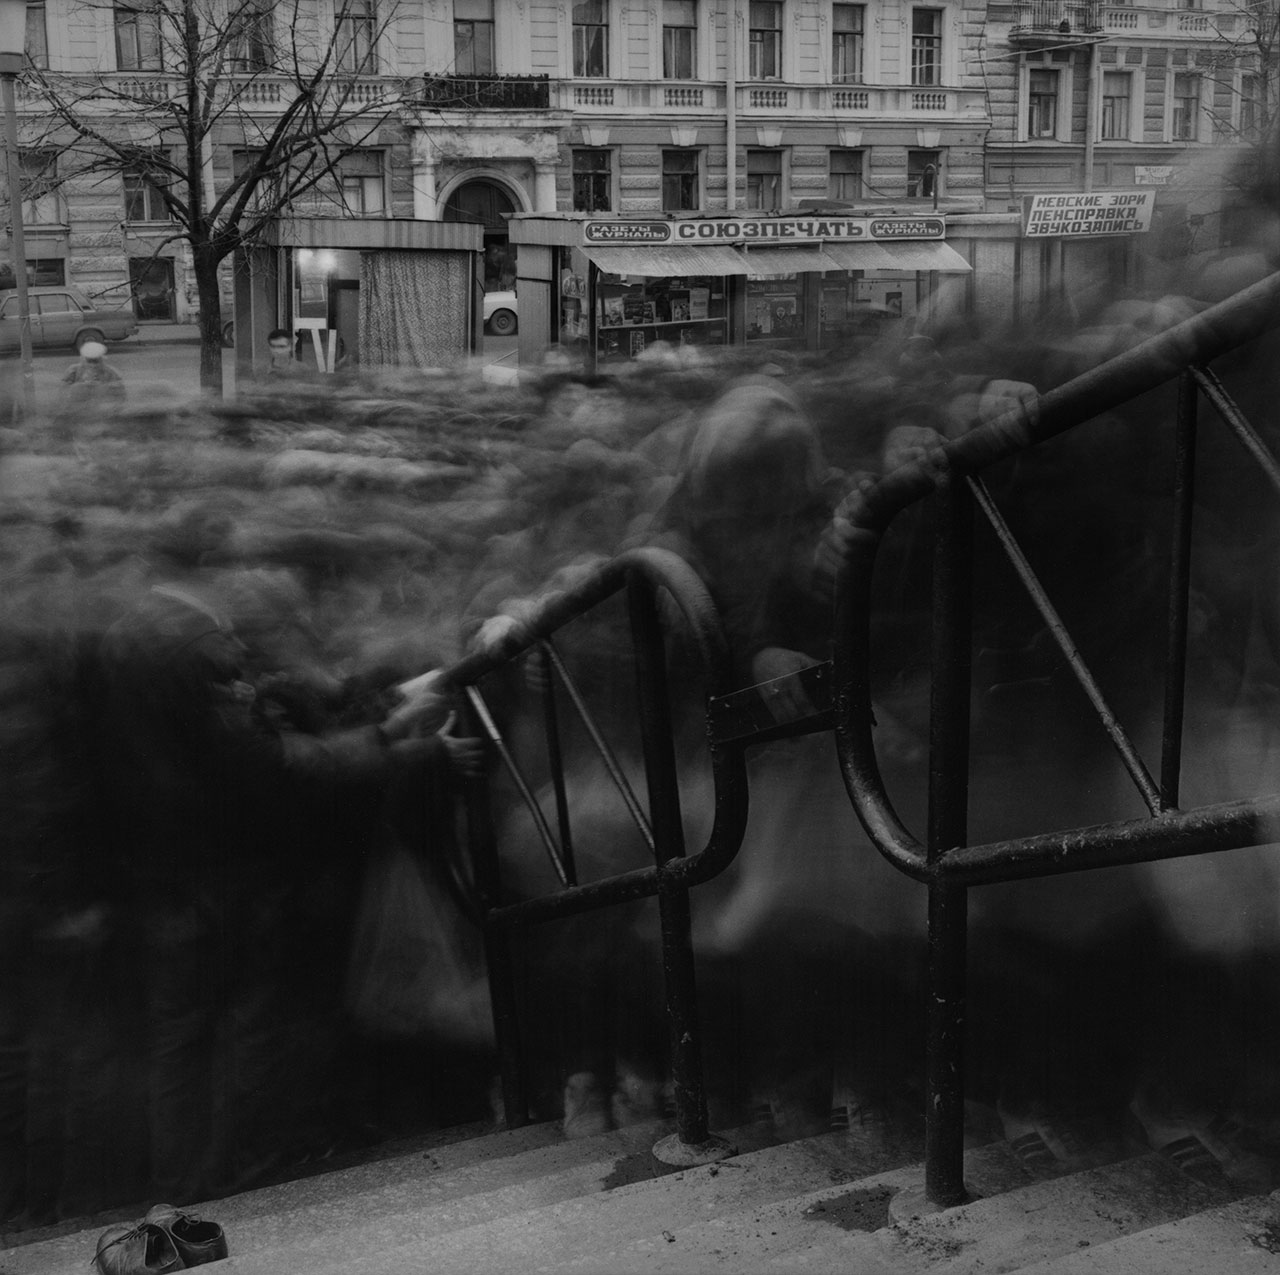 City of Shadows, photography by Alexey Titarenko, from PhotoViz © Gestalten 2016.